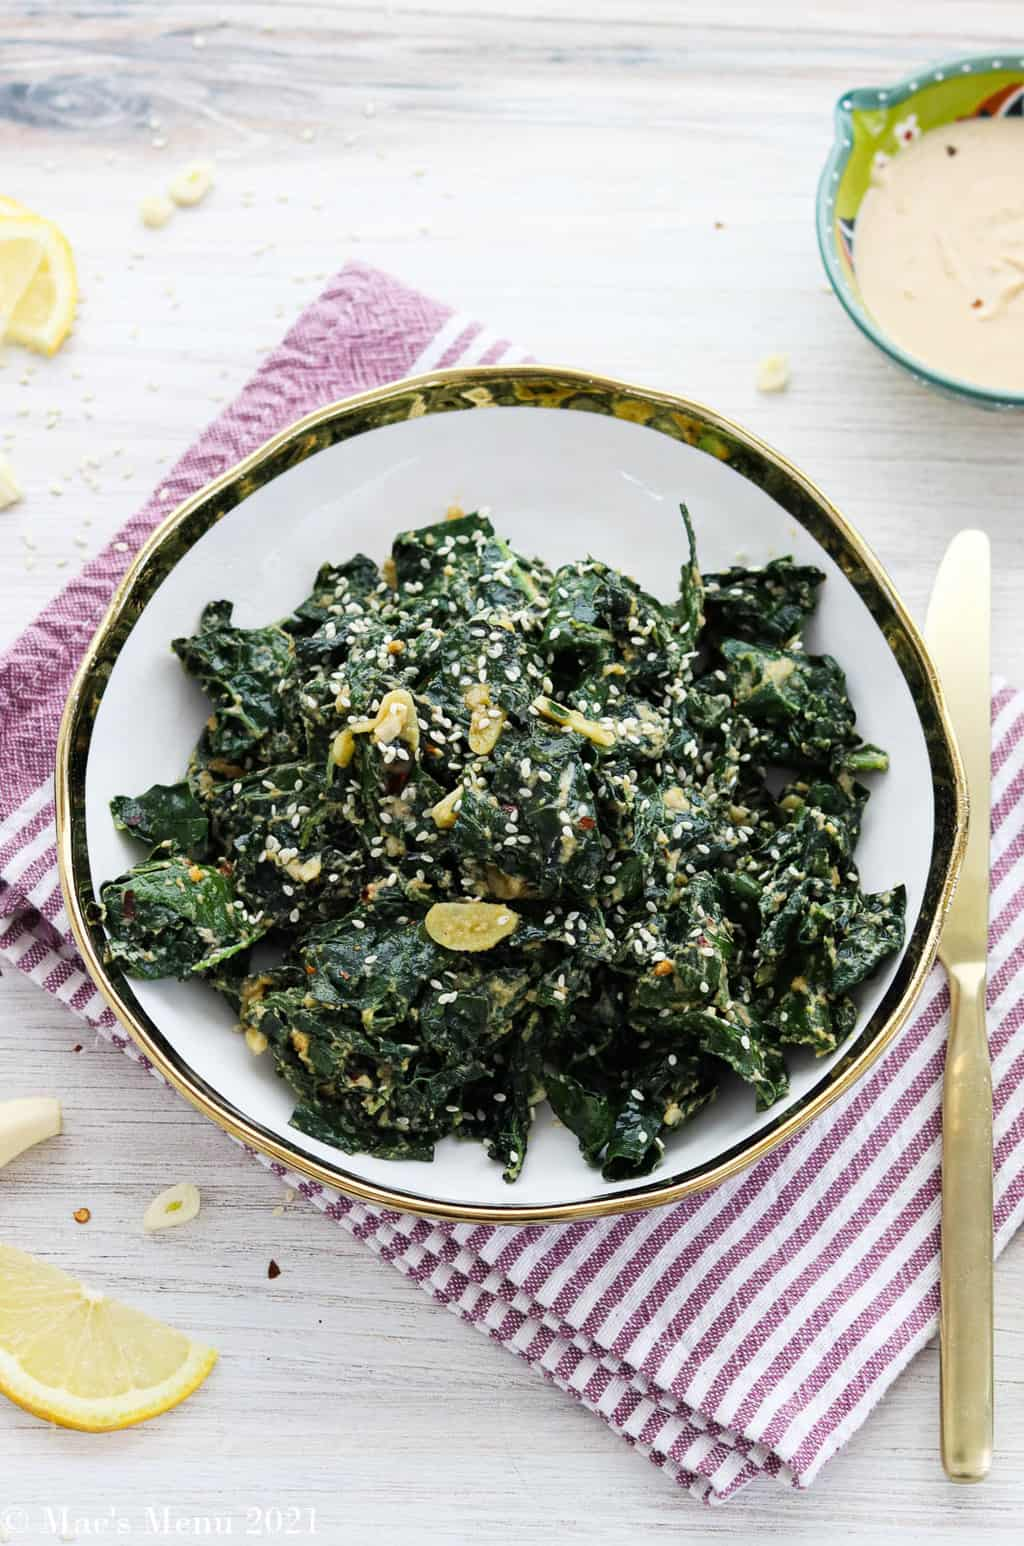 An overhead shot of a bowl of warm kale salad